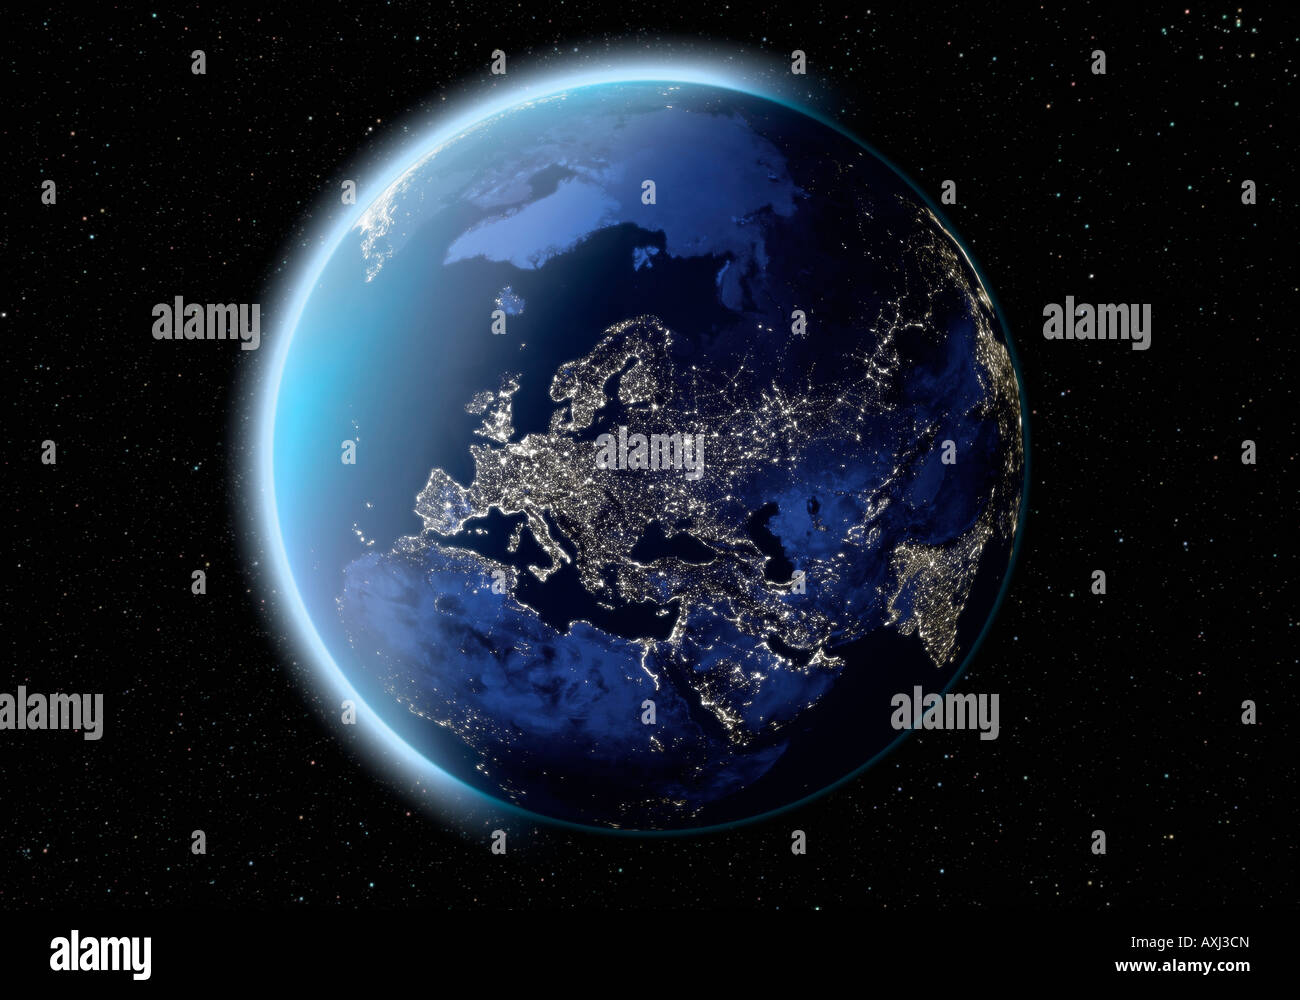 satellite-image-of-planet-earth-europe-a